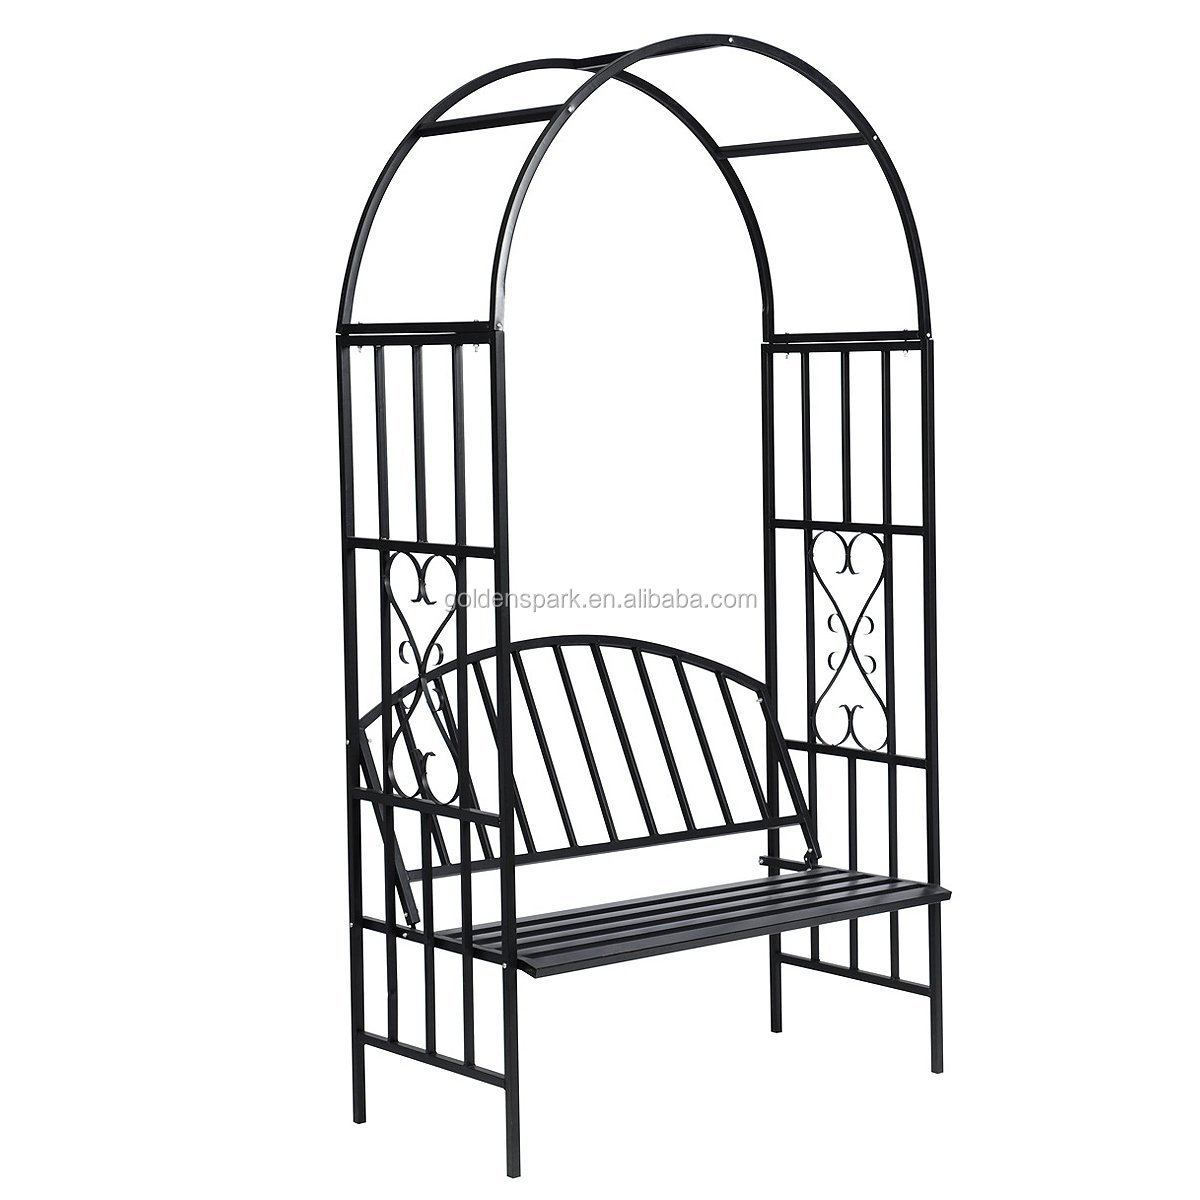 Metal Garden Rose Arch with Bench Patio Arbour Pergola Plants Climbing Support